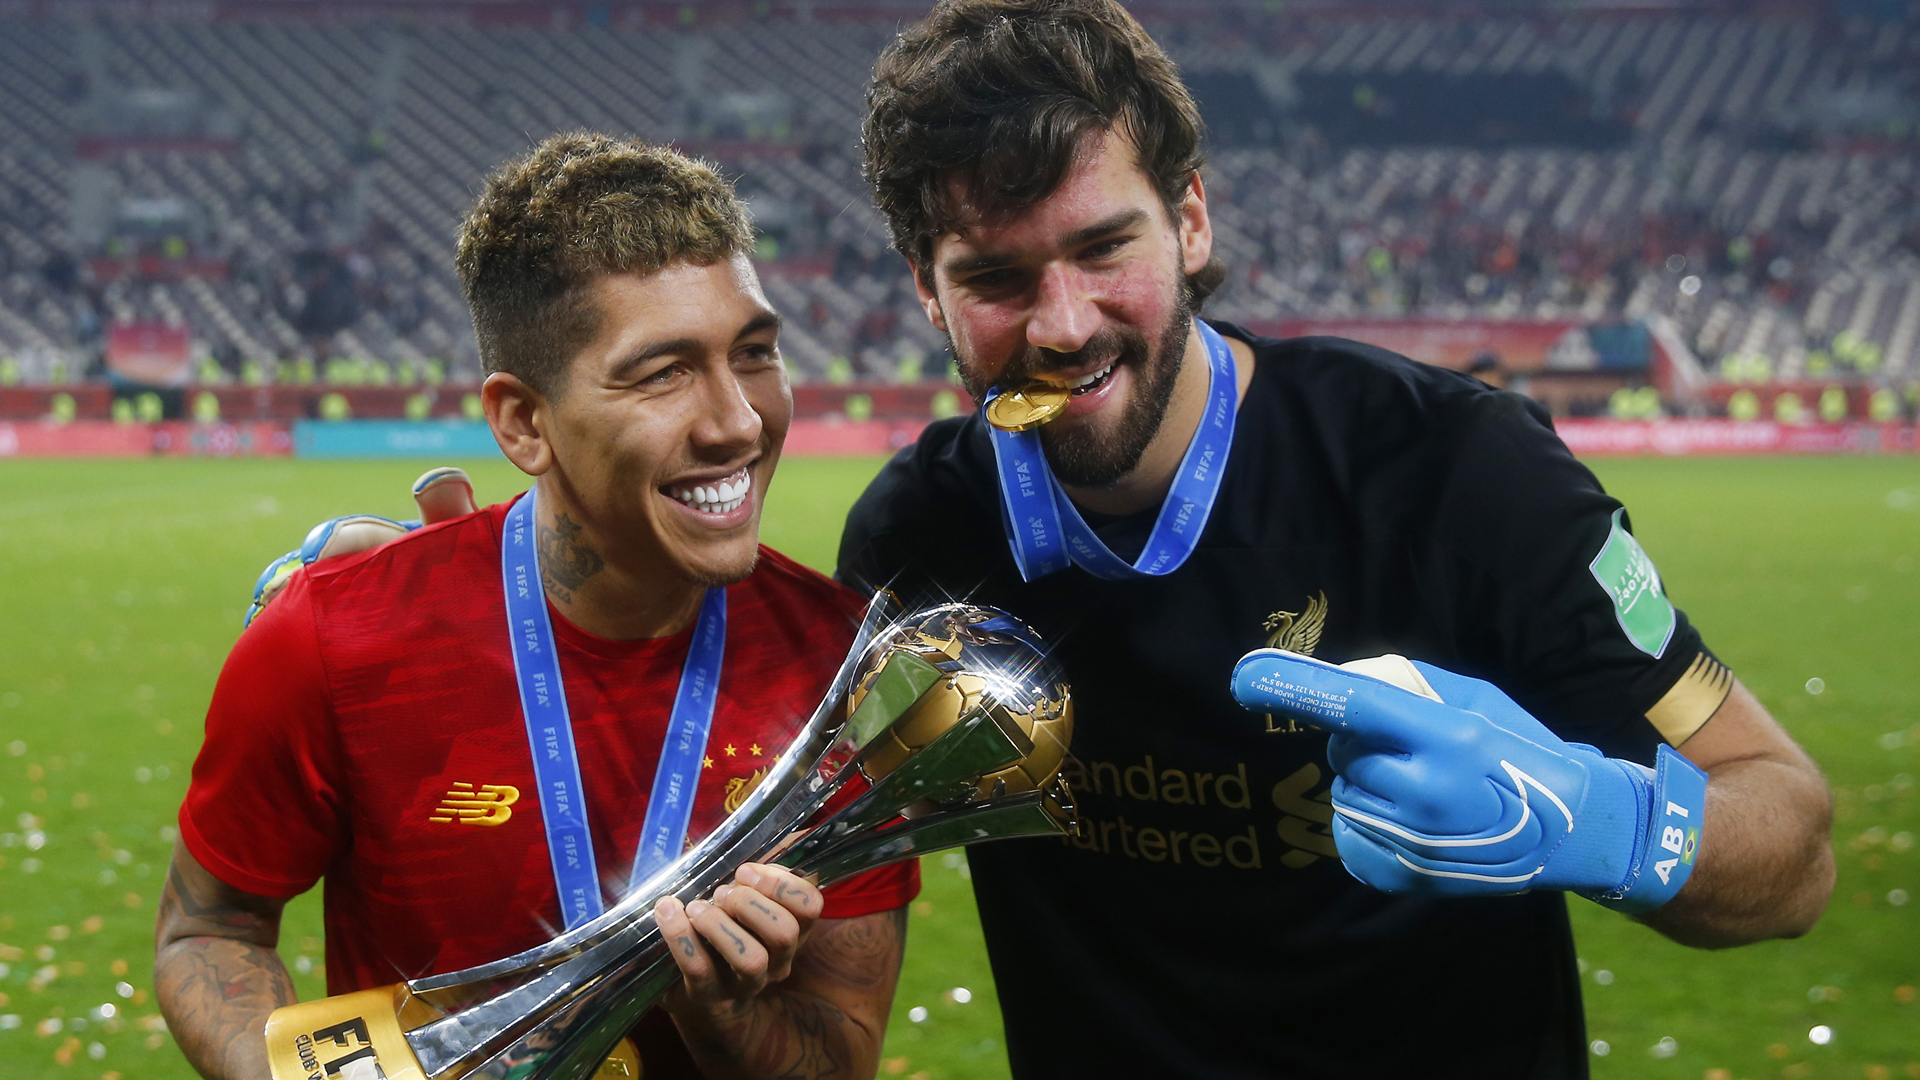 Premier League Rules Won't Allow Liverpool to Wear FIFA World Champions Badges